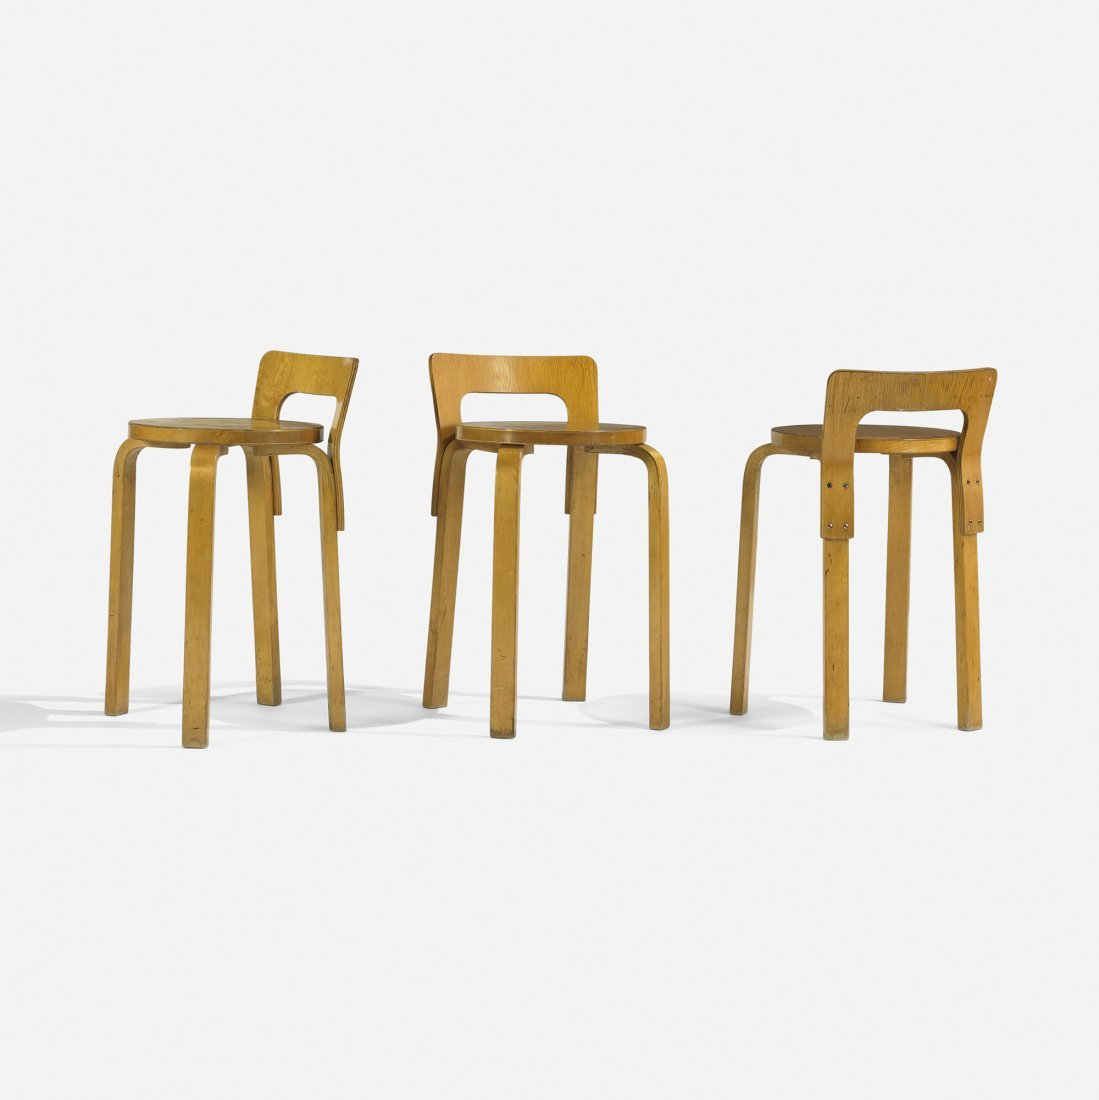 Alvar Aalto L-leg stools, set of three